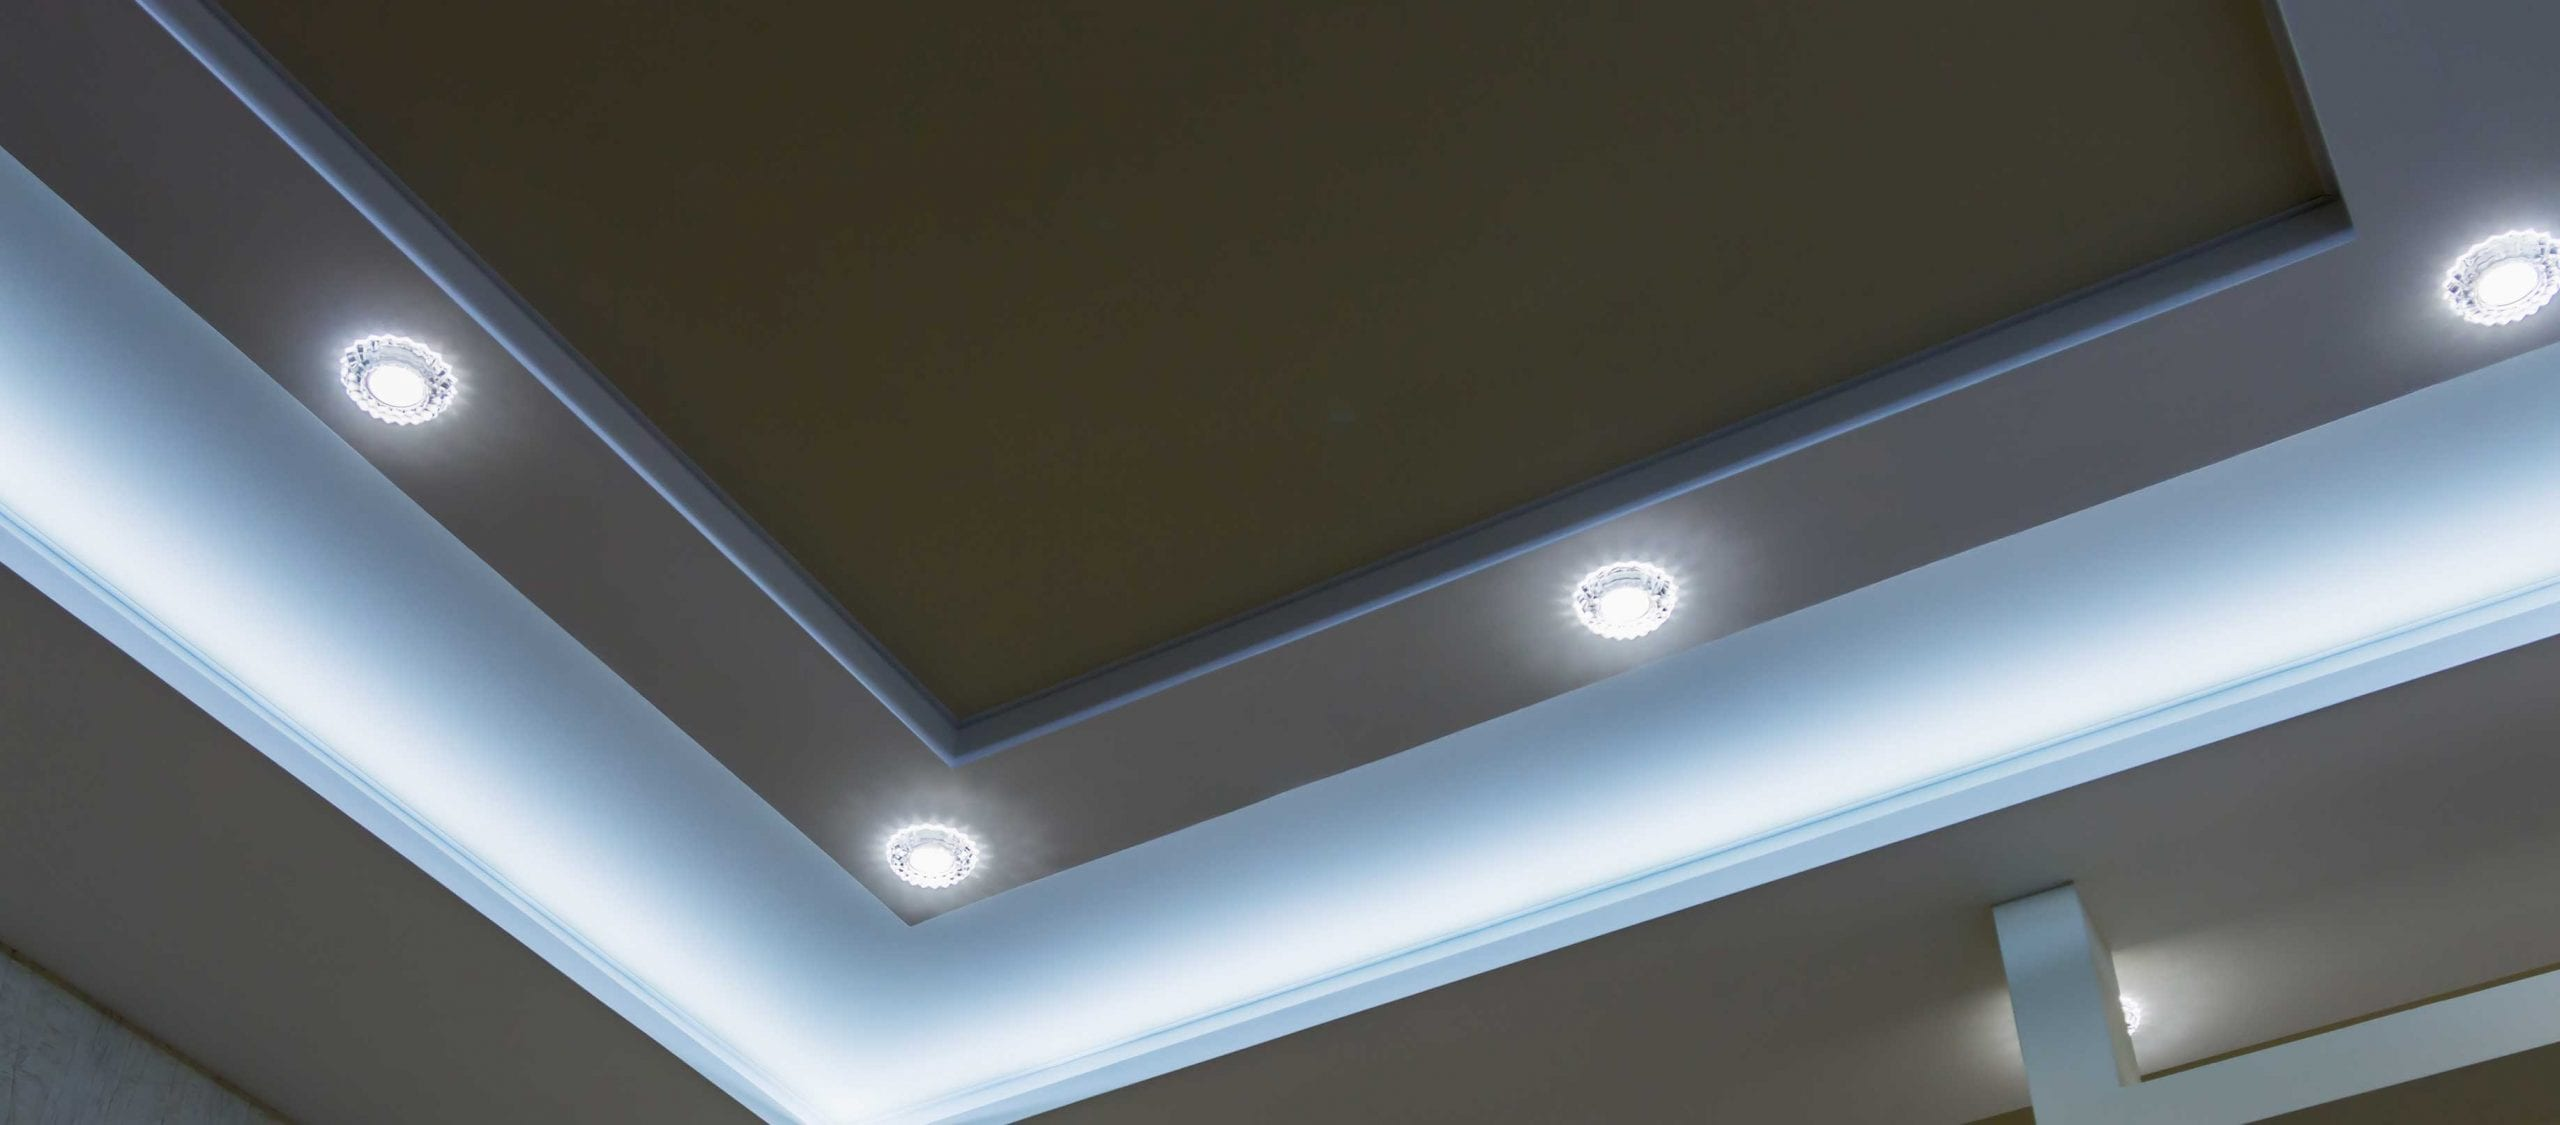 LED office space lighting